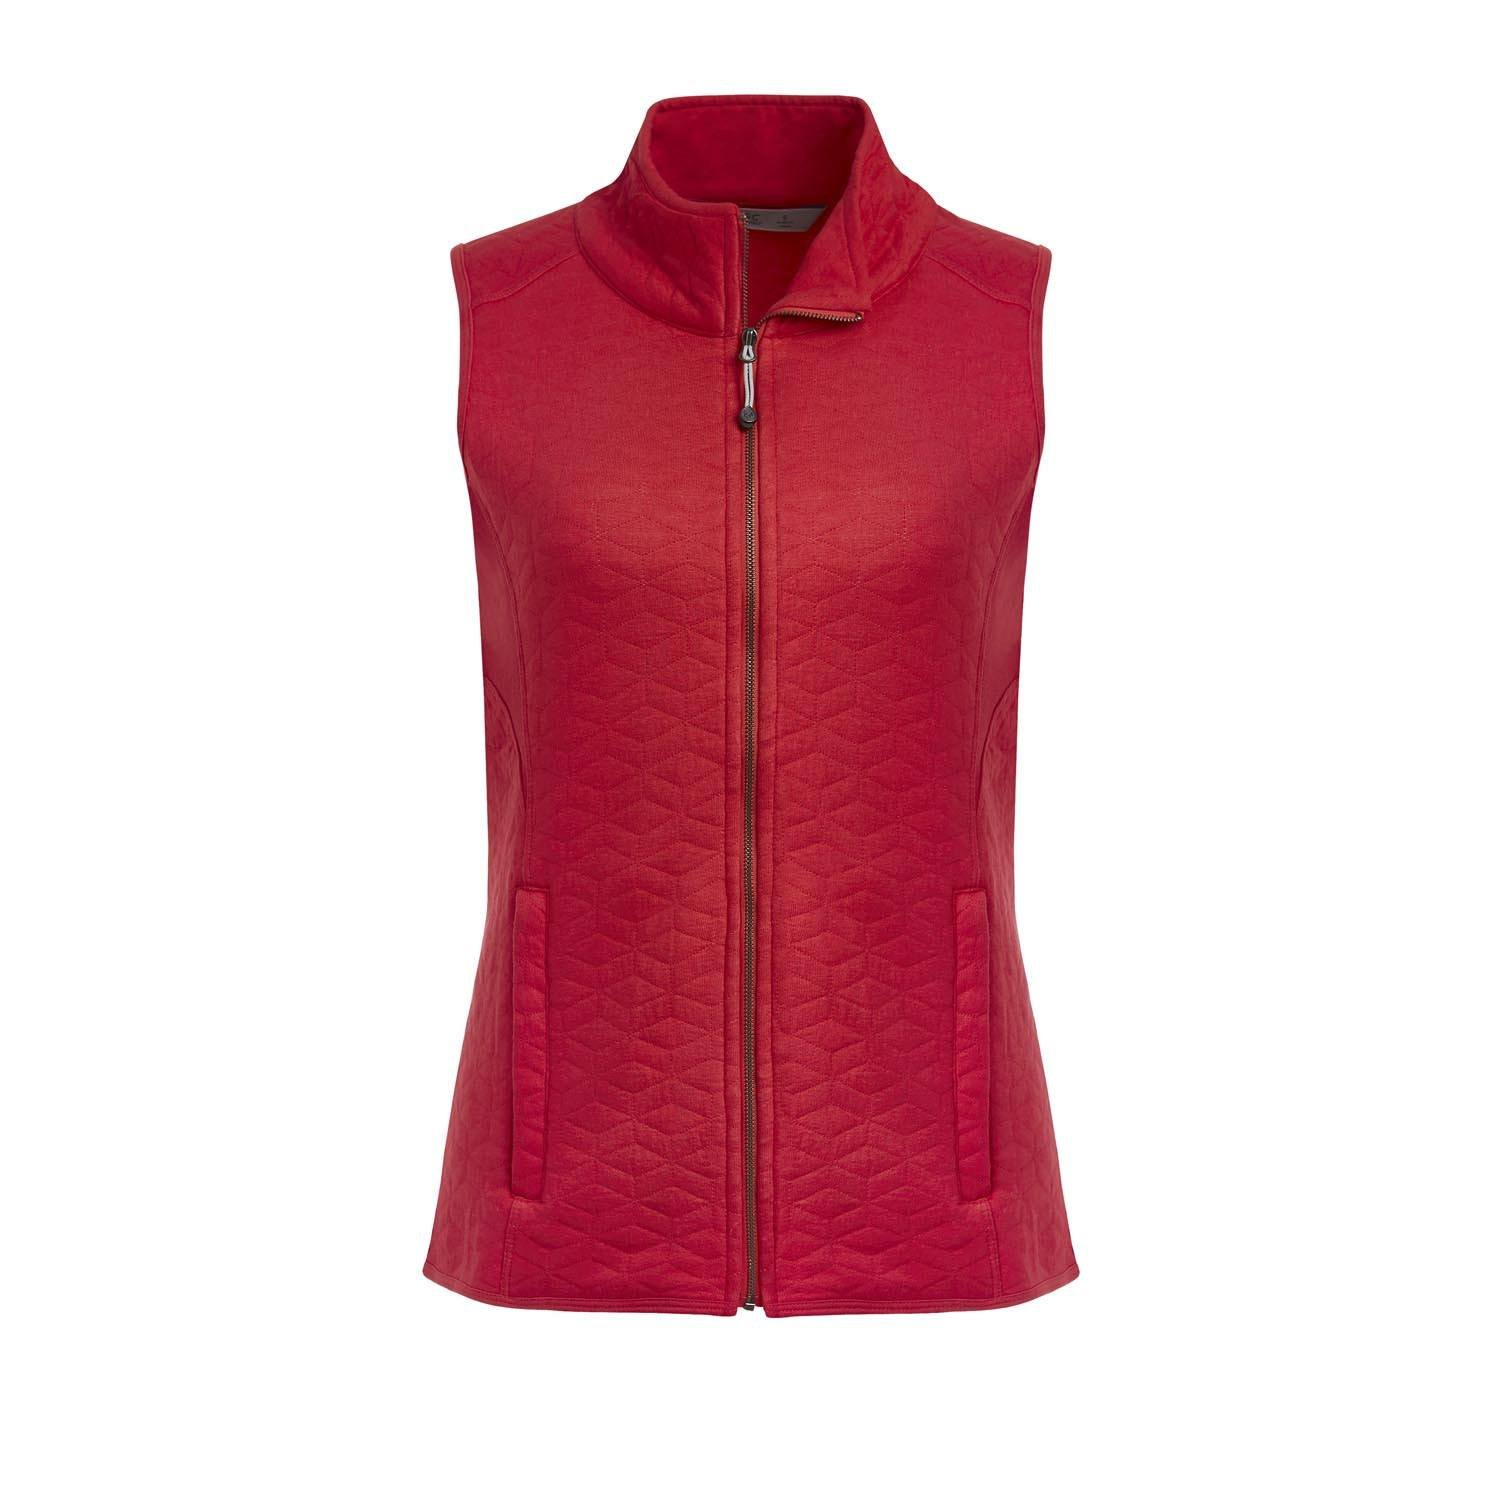 Tasc Performance Red Hot Womens Top Quilt Vest Red Size Small